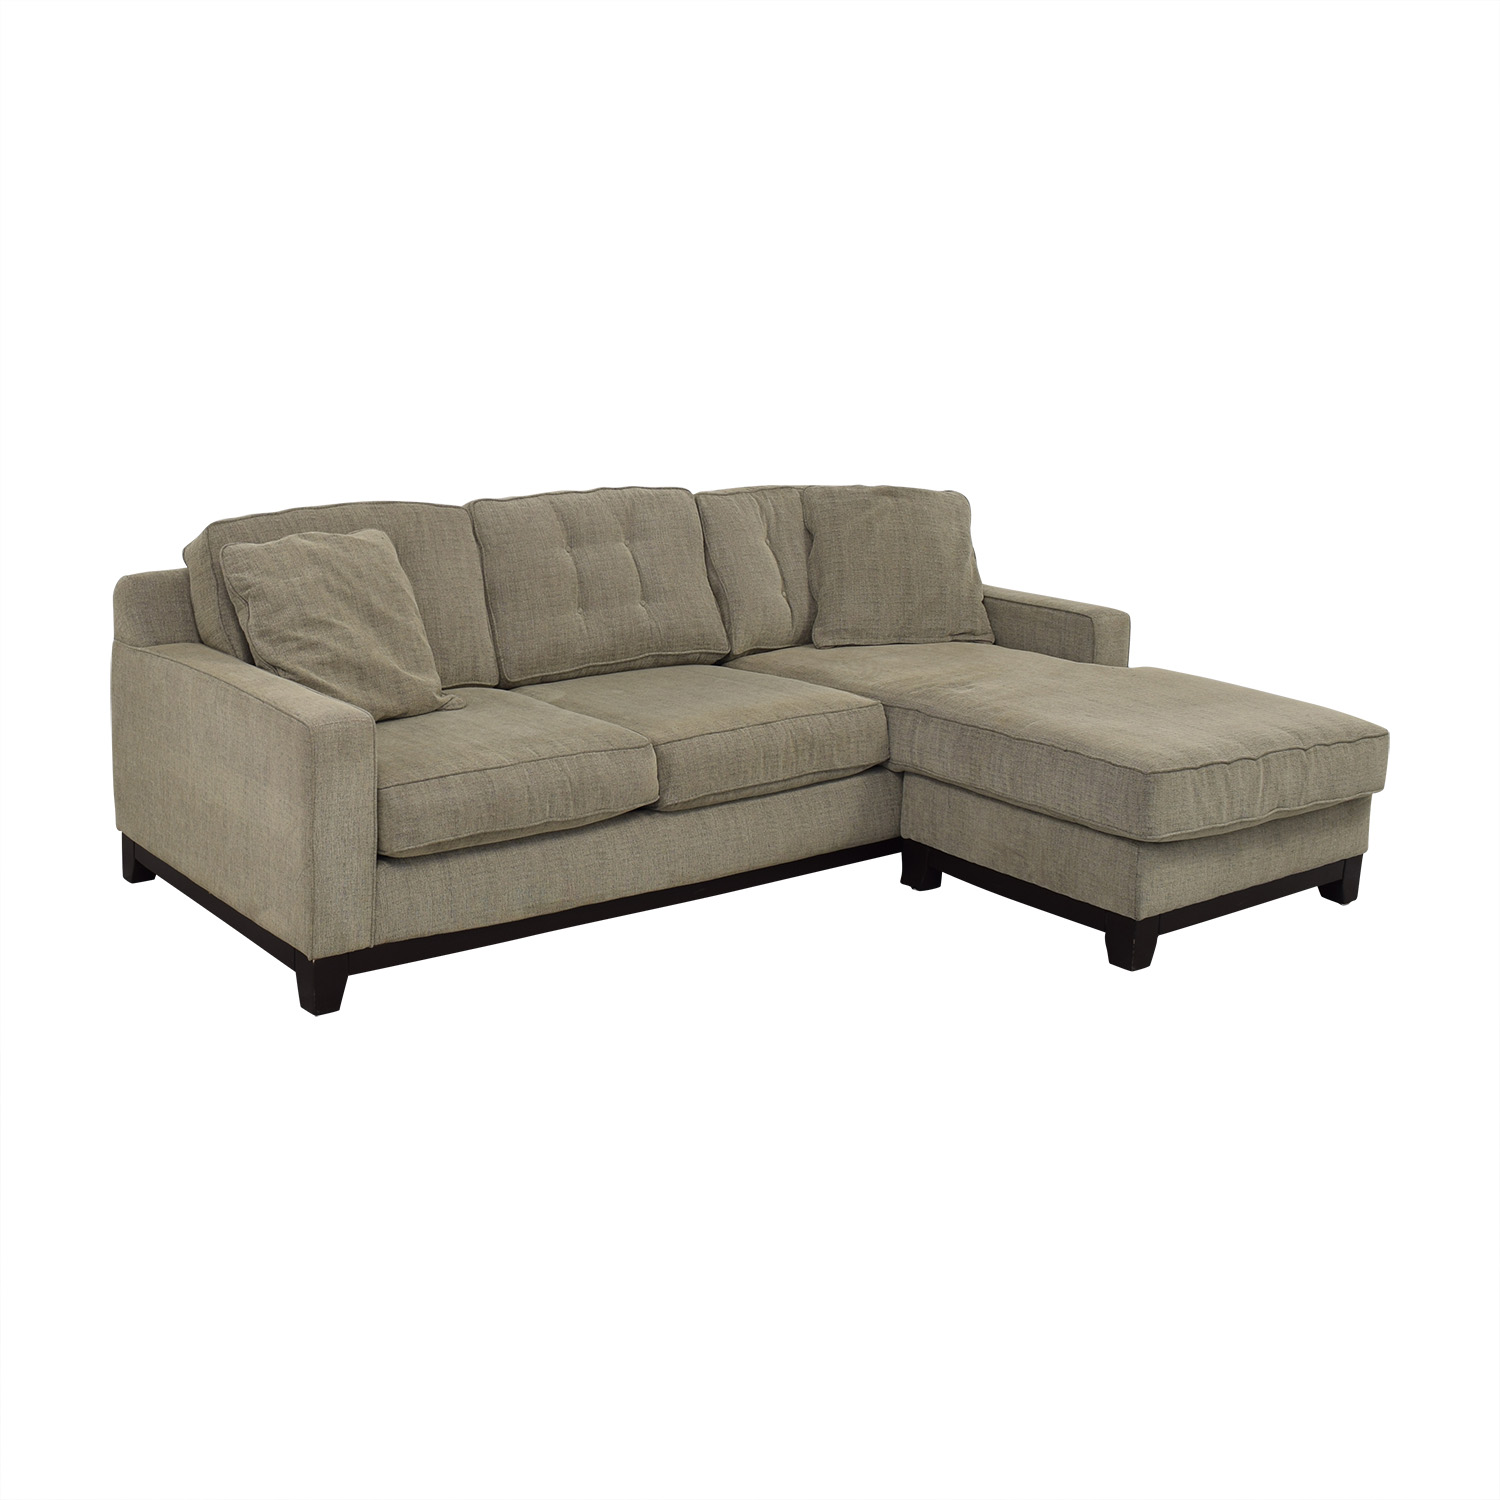 Macy's Macy's Grey Semi-Tufted Chaise Sectional coupon